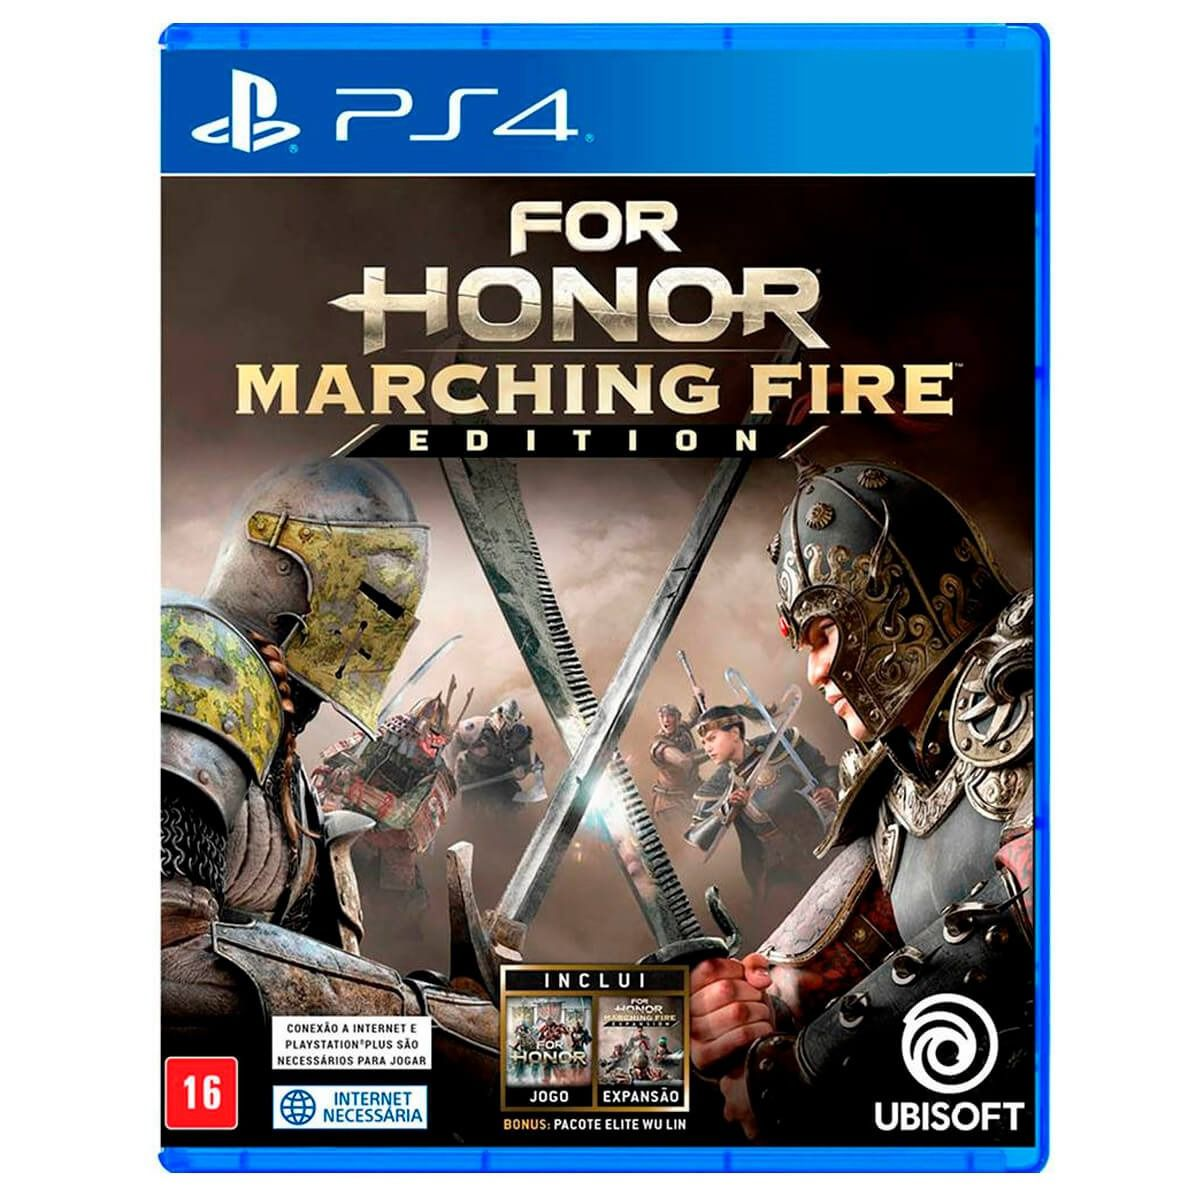 For Honor Marching Fire Edition PS4